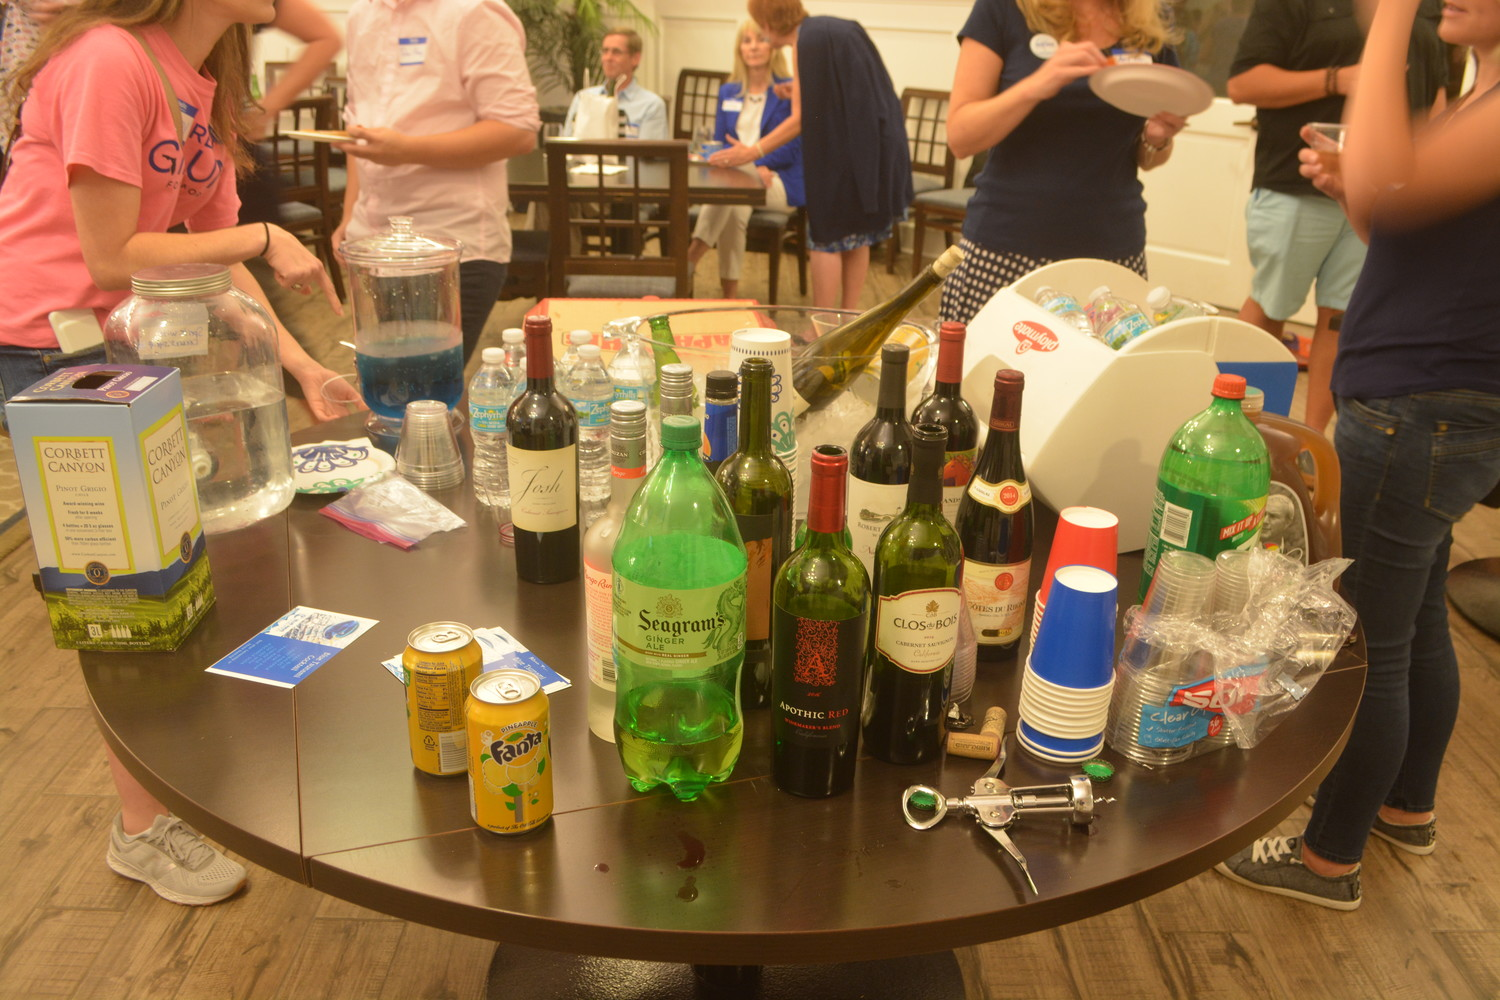 An assortment of drinks and snacks available for guests at the Aug. 28 party hosted by Ponte Vedra Democratic Club.